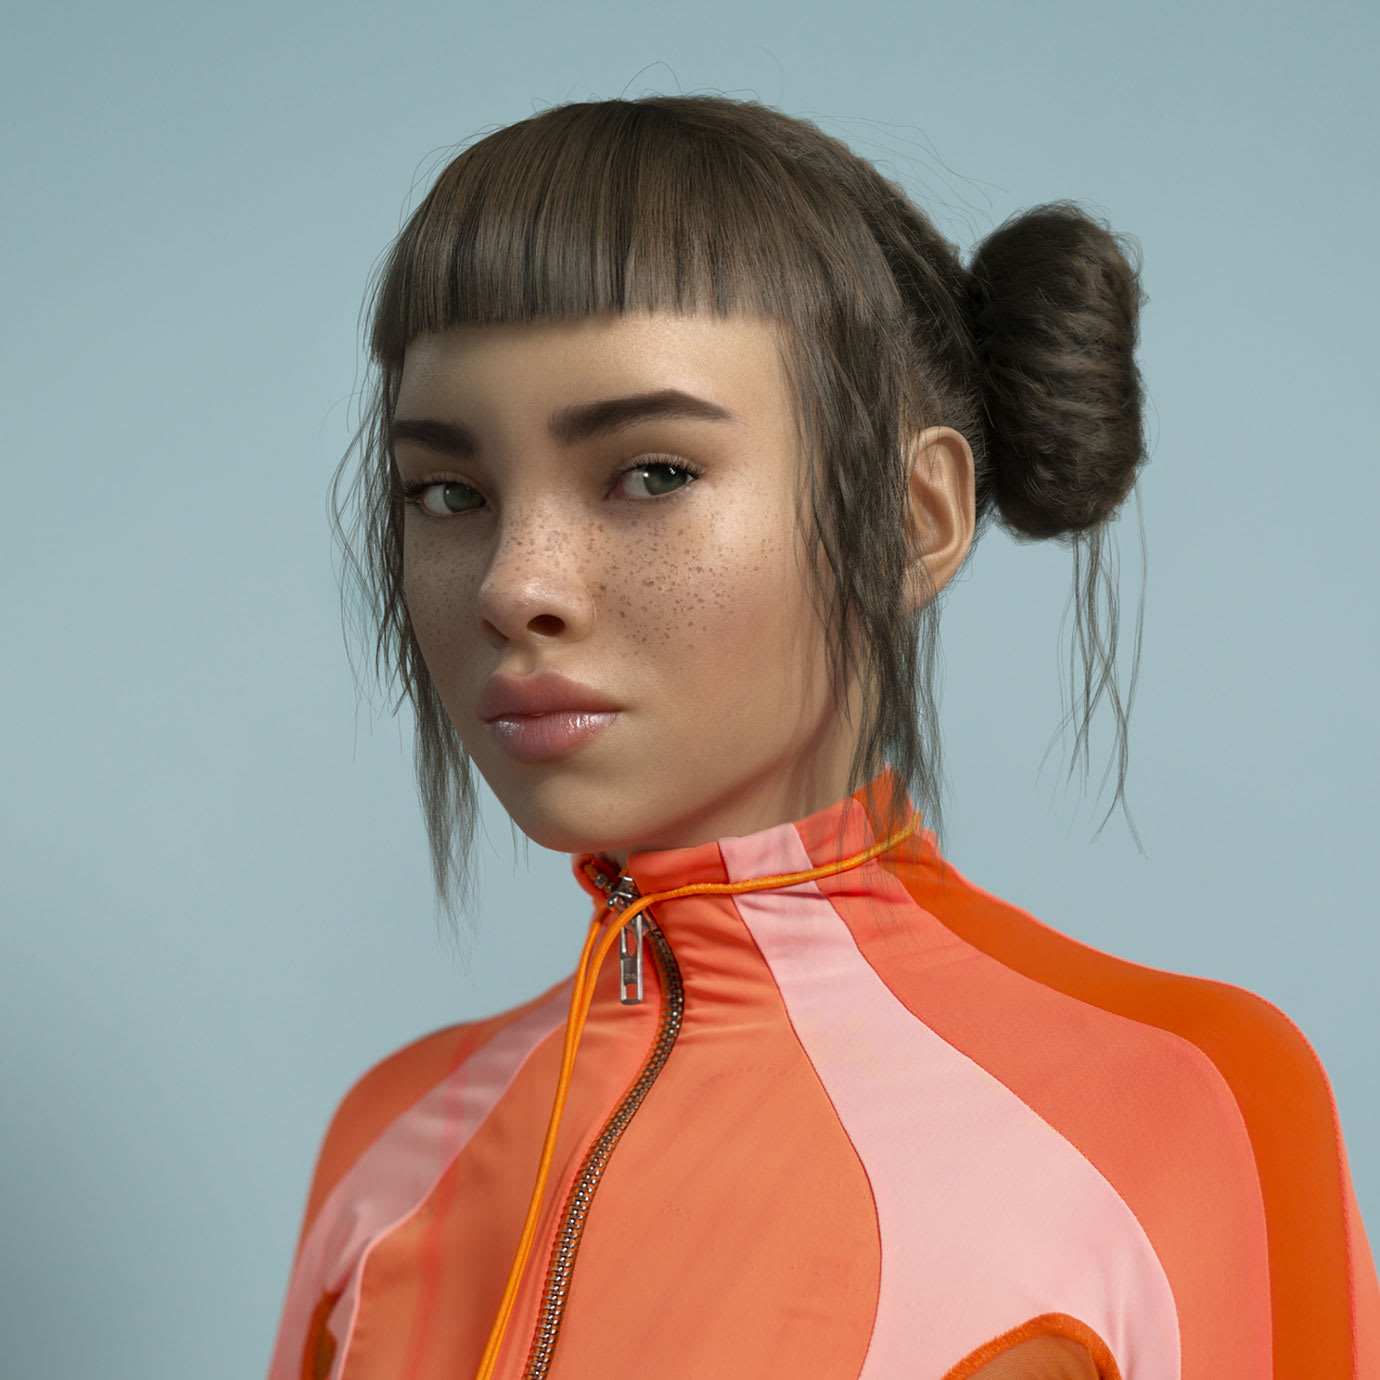 A girl wearing an orange outfit.